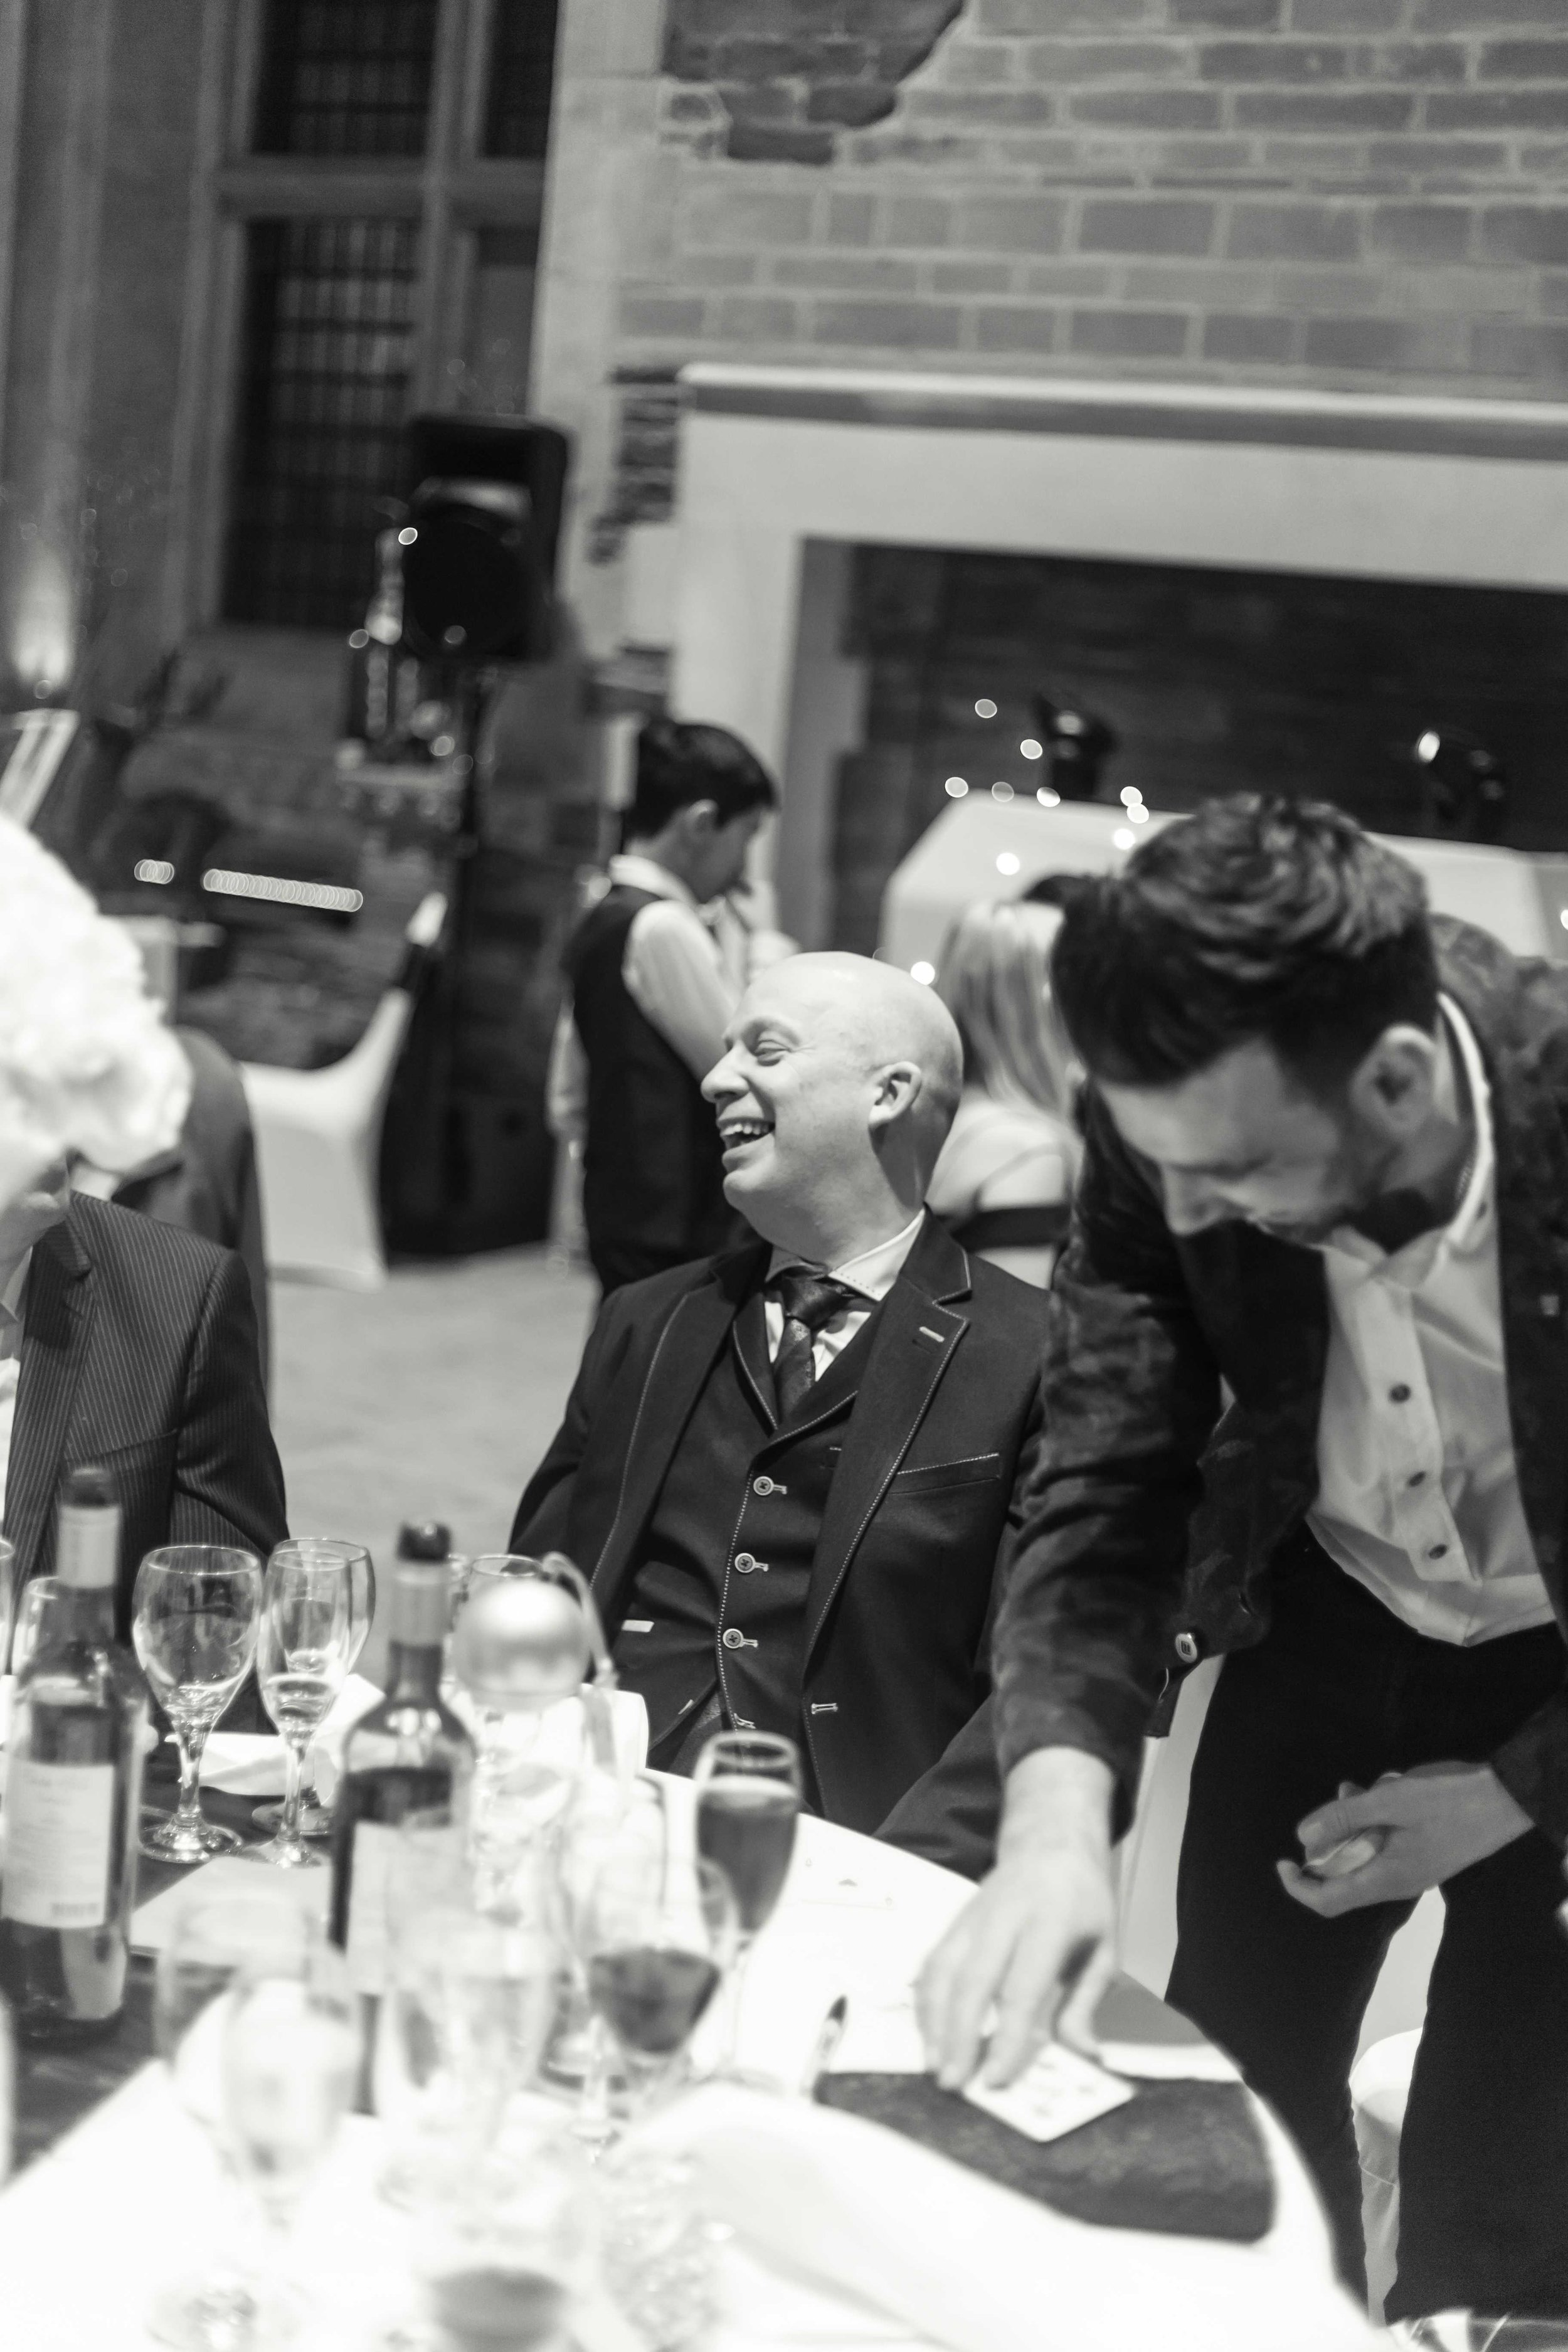 Magician performing tricks at Caerphilly wedding